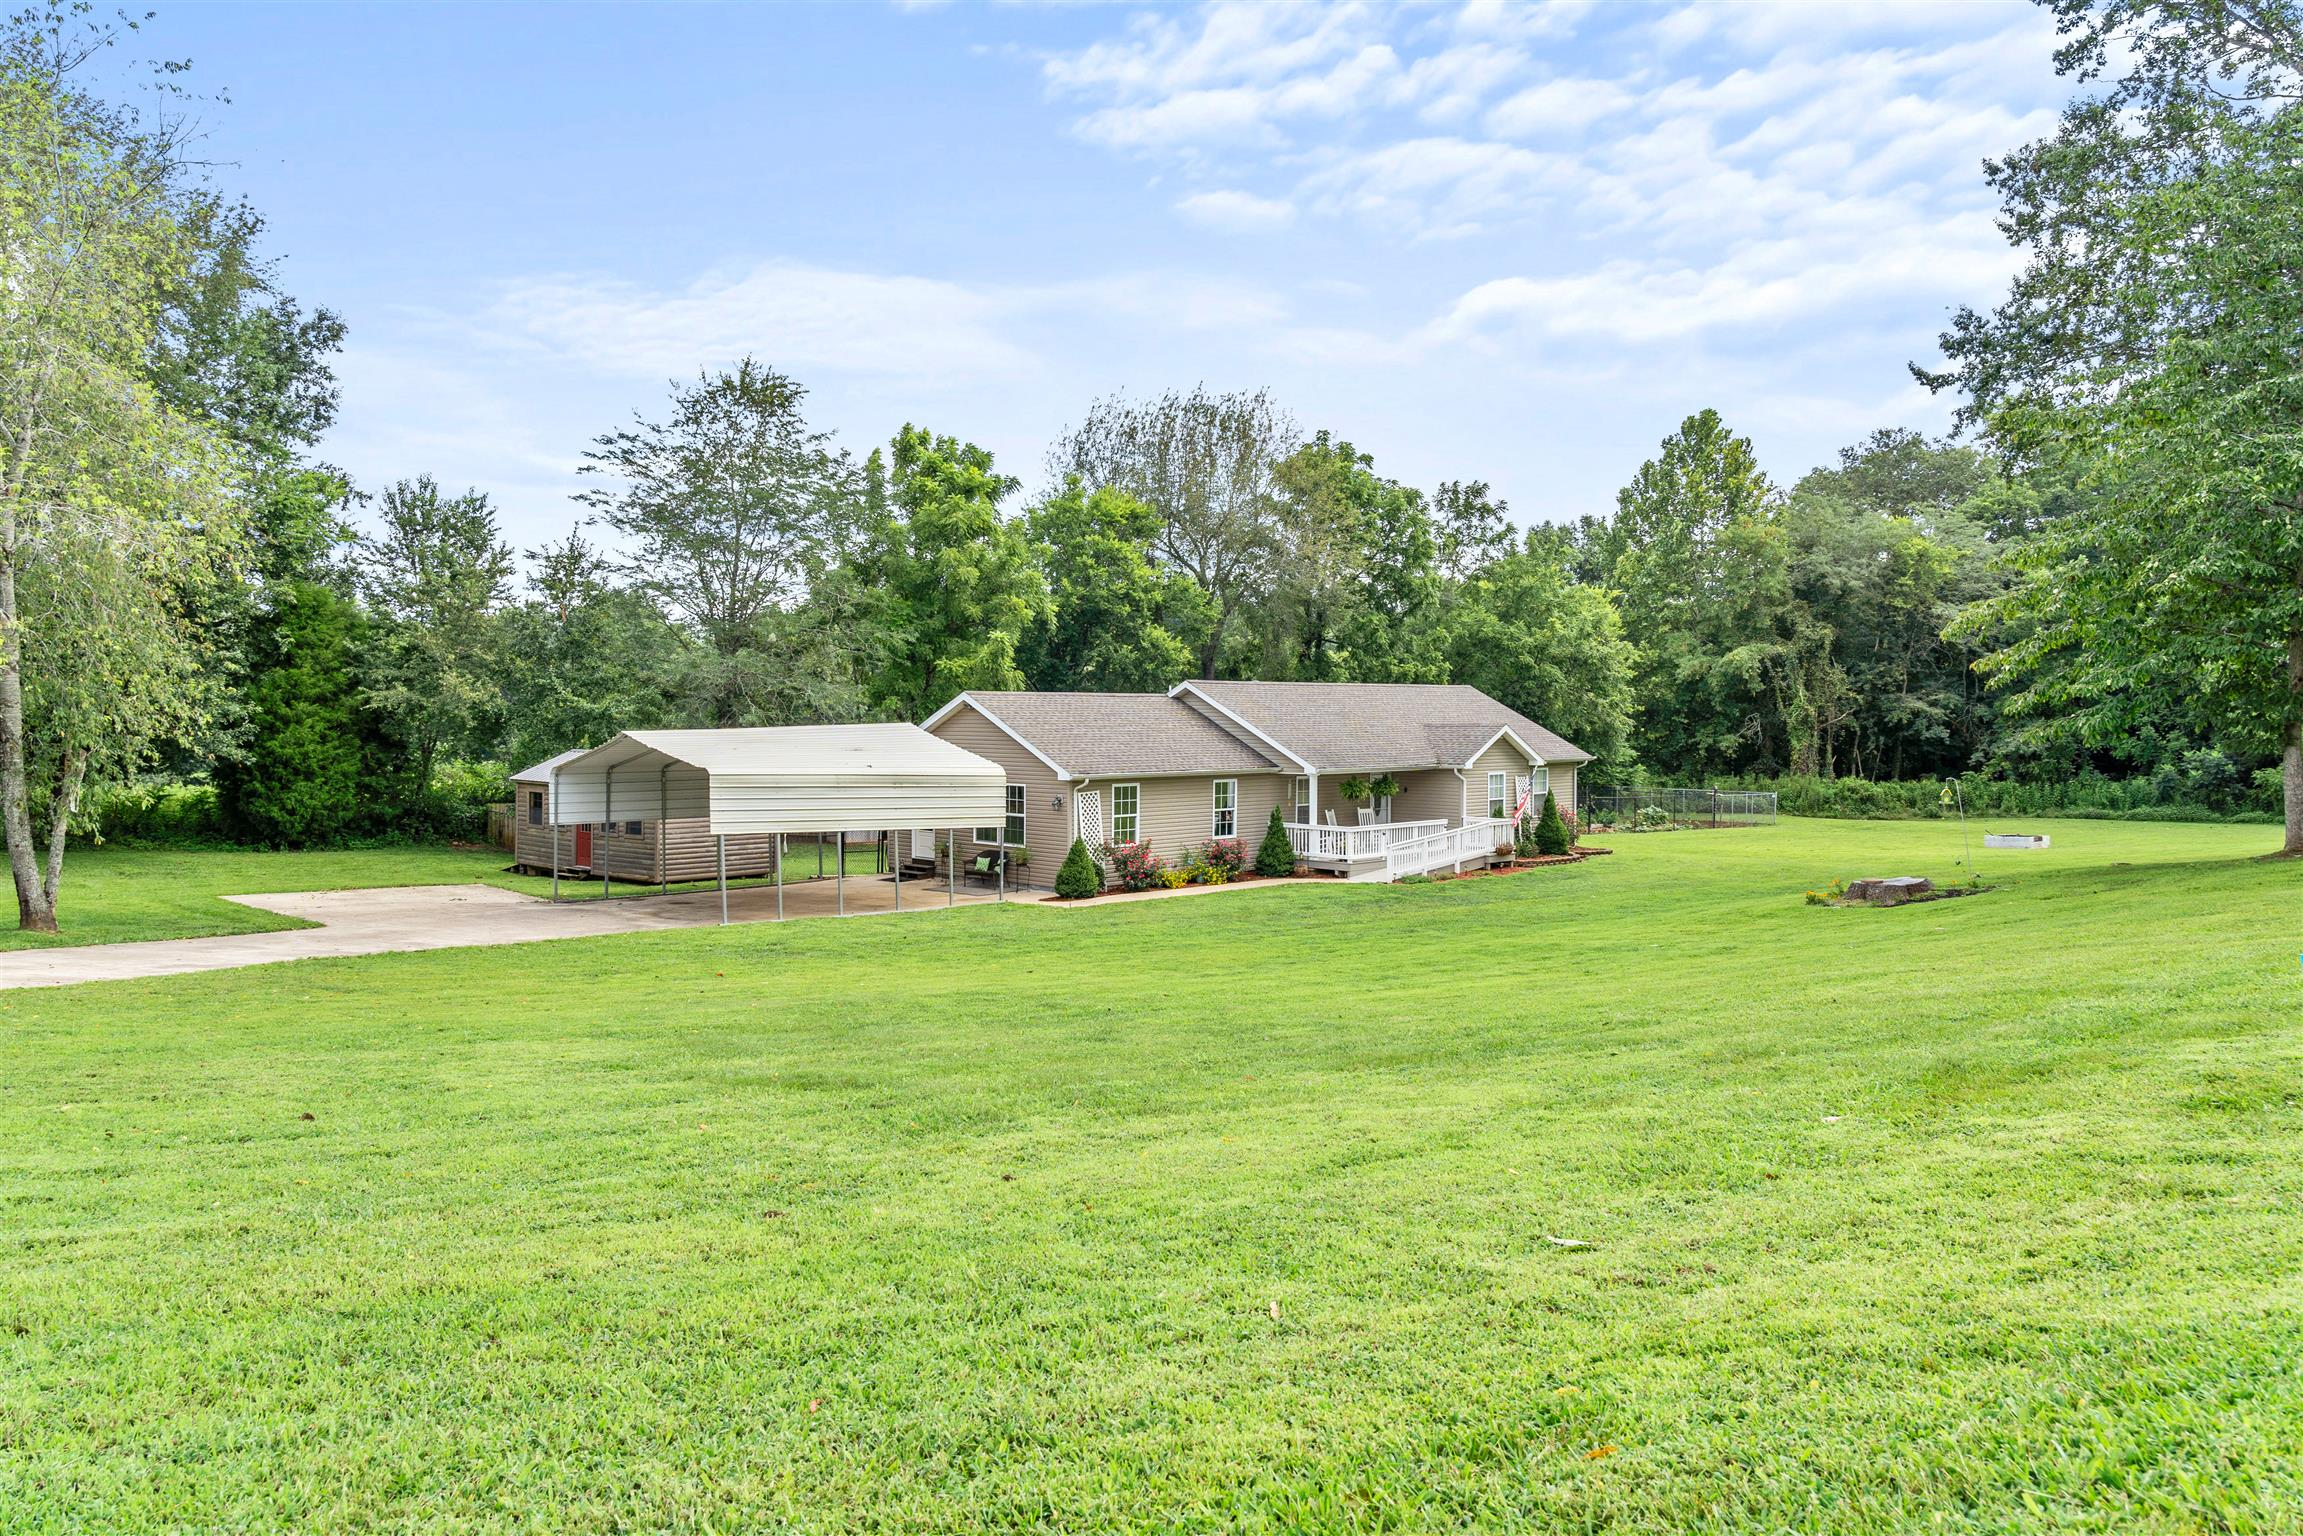 2543 Toler Ct, Woodlawn, TN 37191 - Woodlawn, TN real estate listing